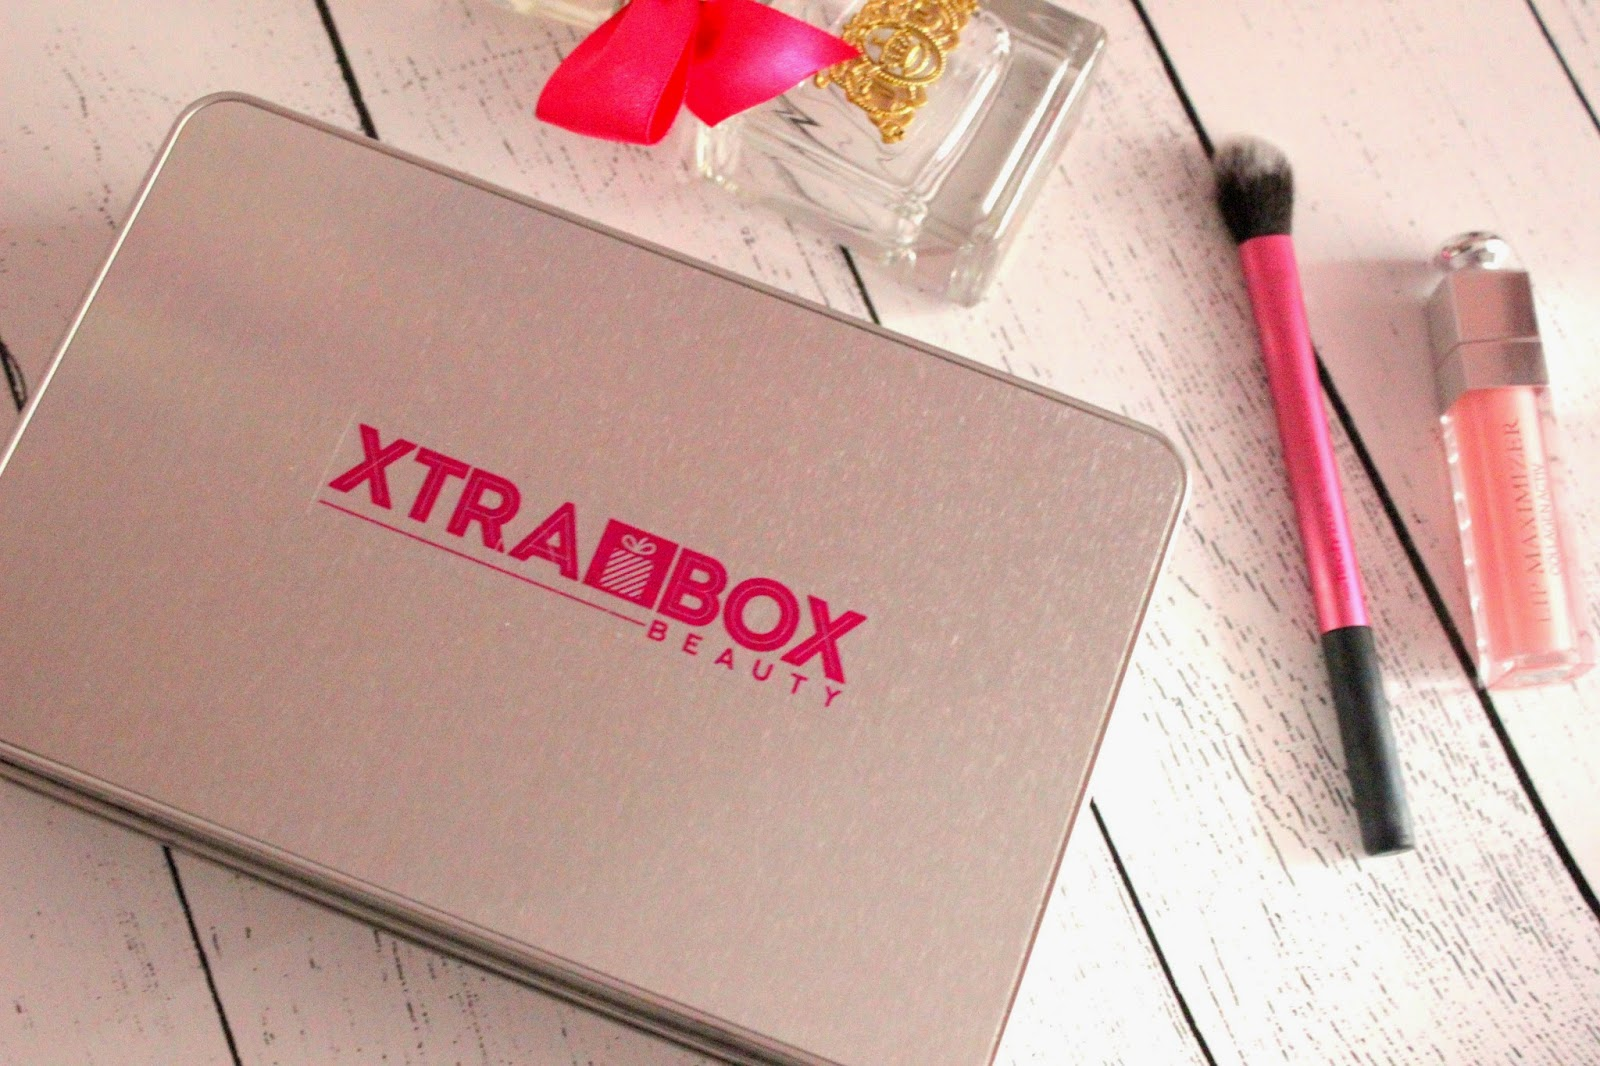 XTRABOX BEAUTY #MARZEC 2015